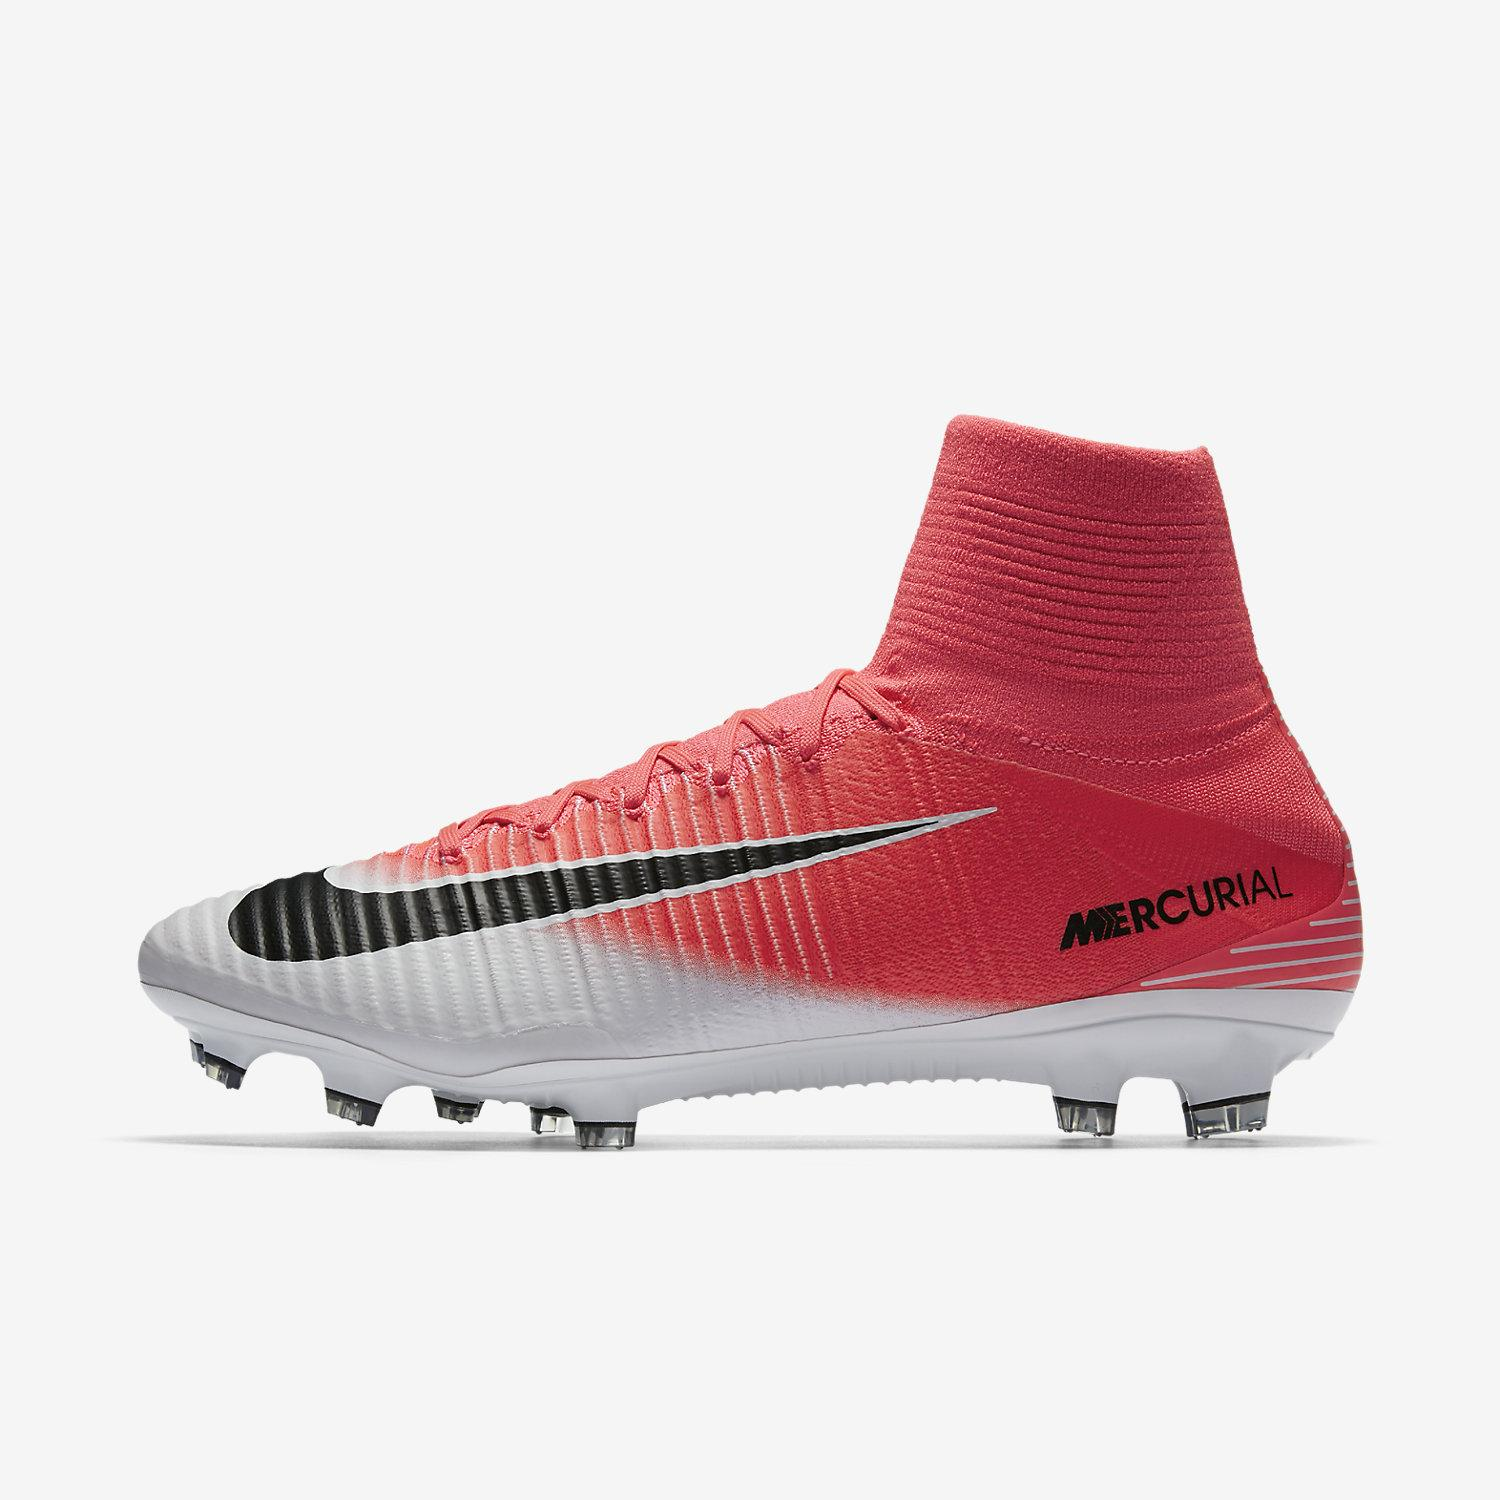 Nike Football Shoes Mercurial Superfly V Fg Racer Pink black-white -  Tifoshop.com bfeedca696